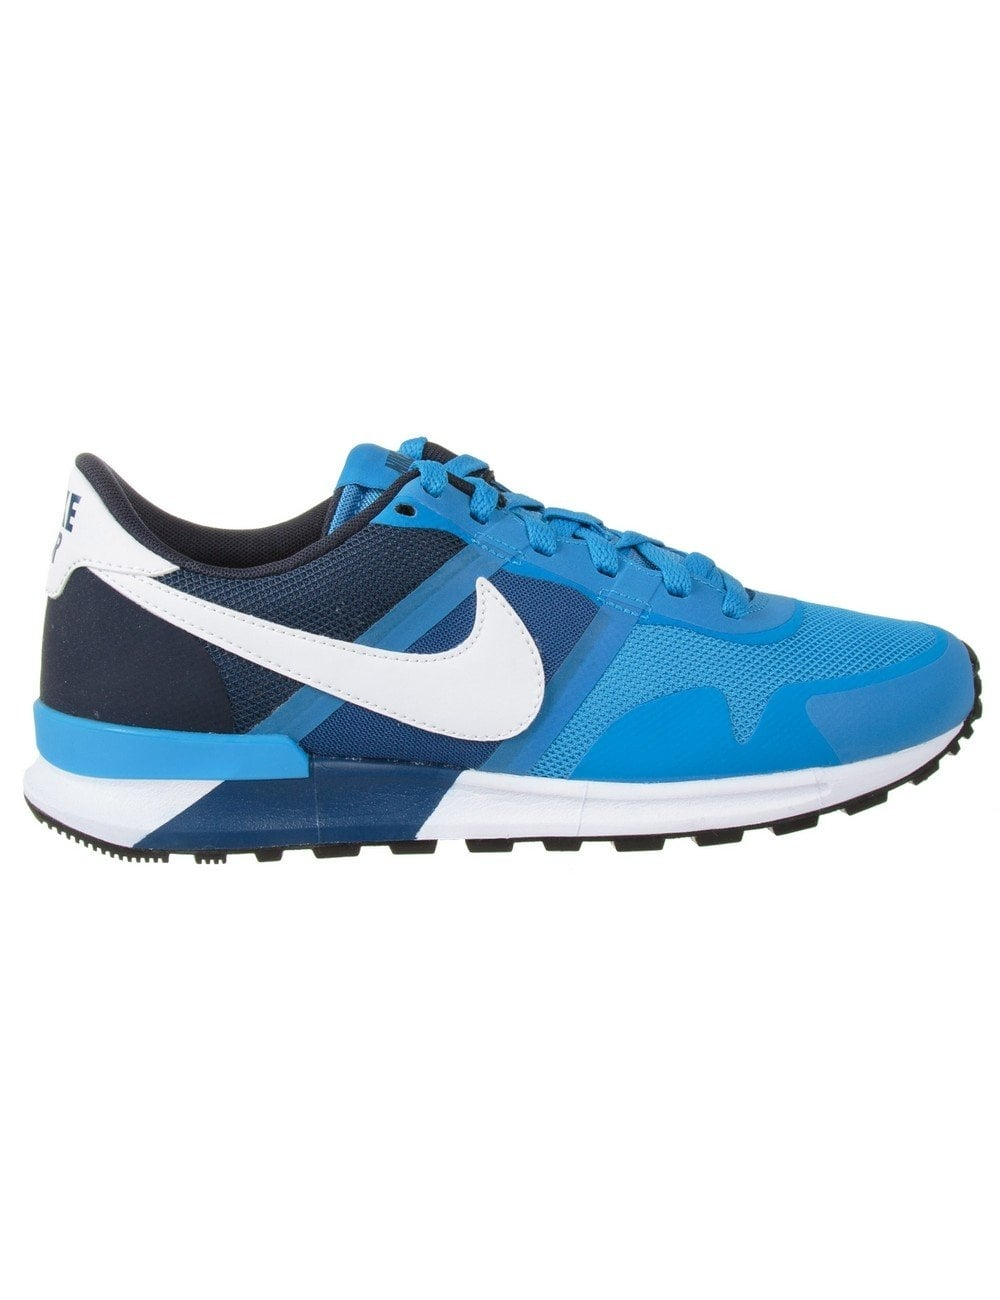 new styles 2d918 80321 Nike Air Pegasus 8330 - Light Blue